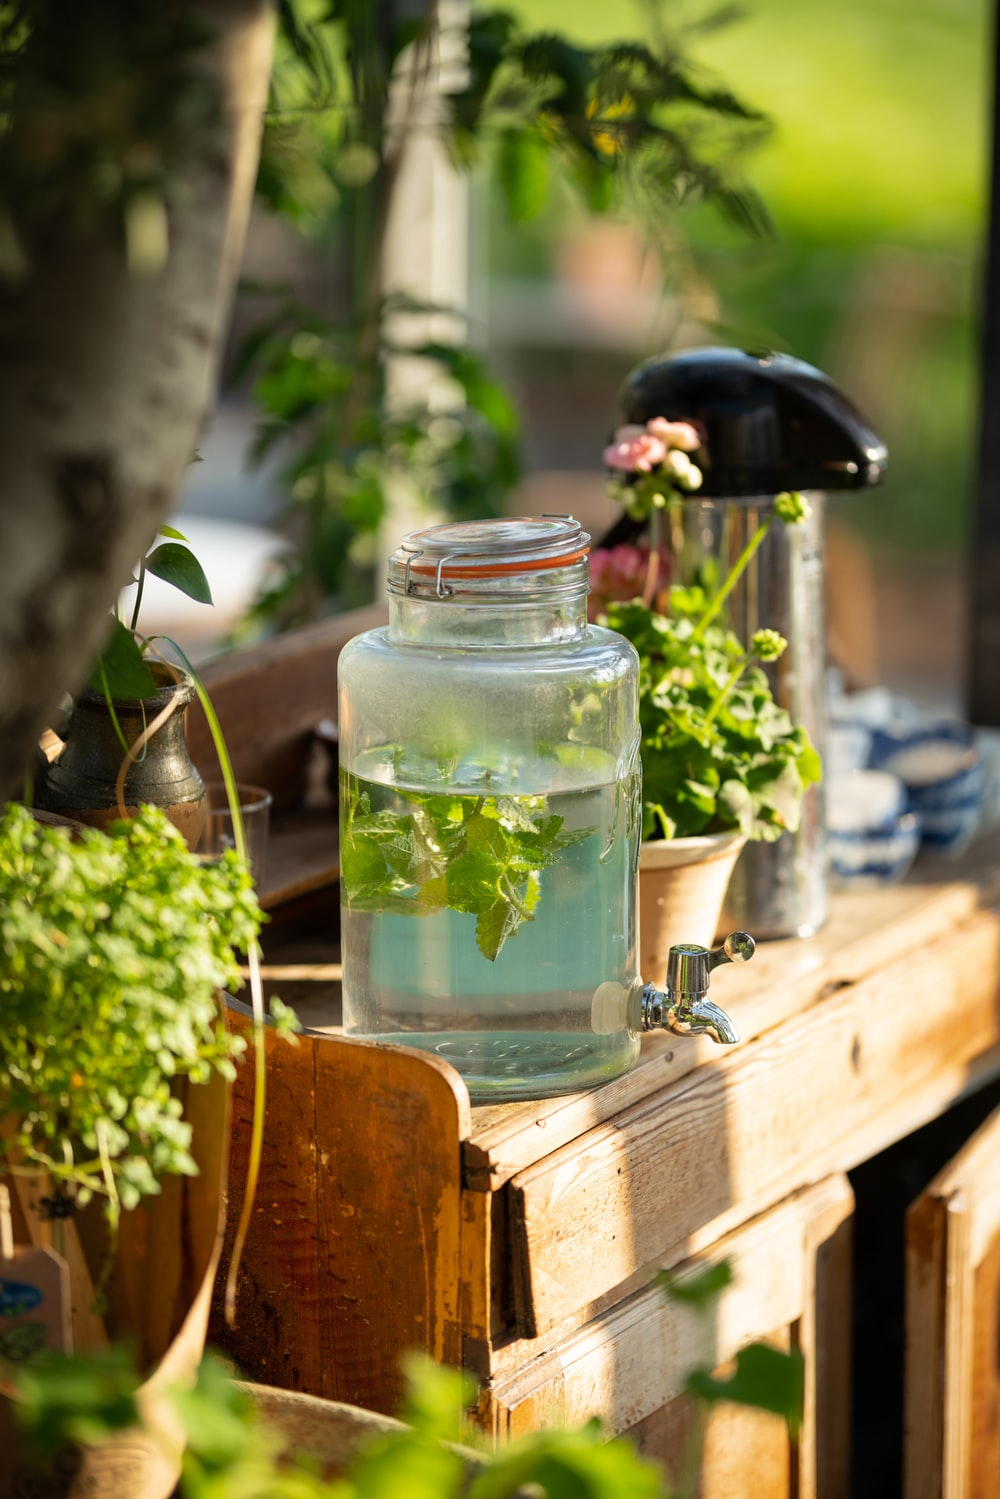 clear glass jar with green leaves